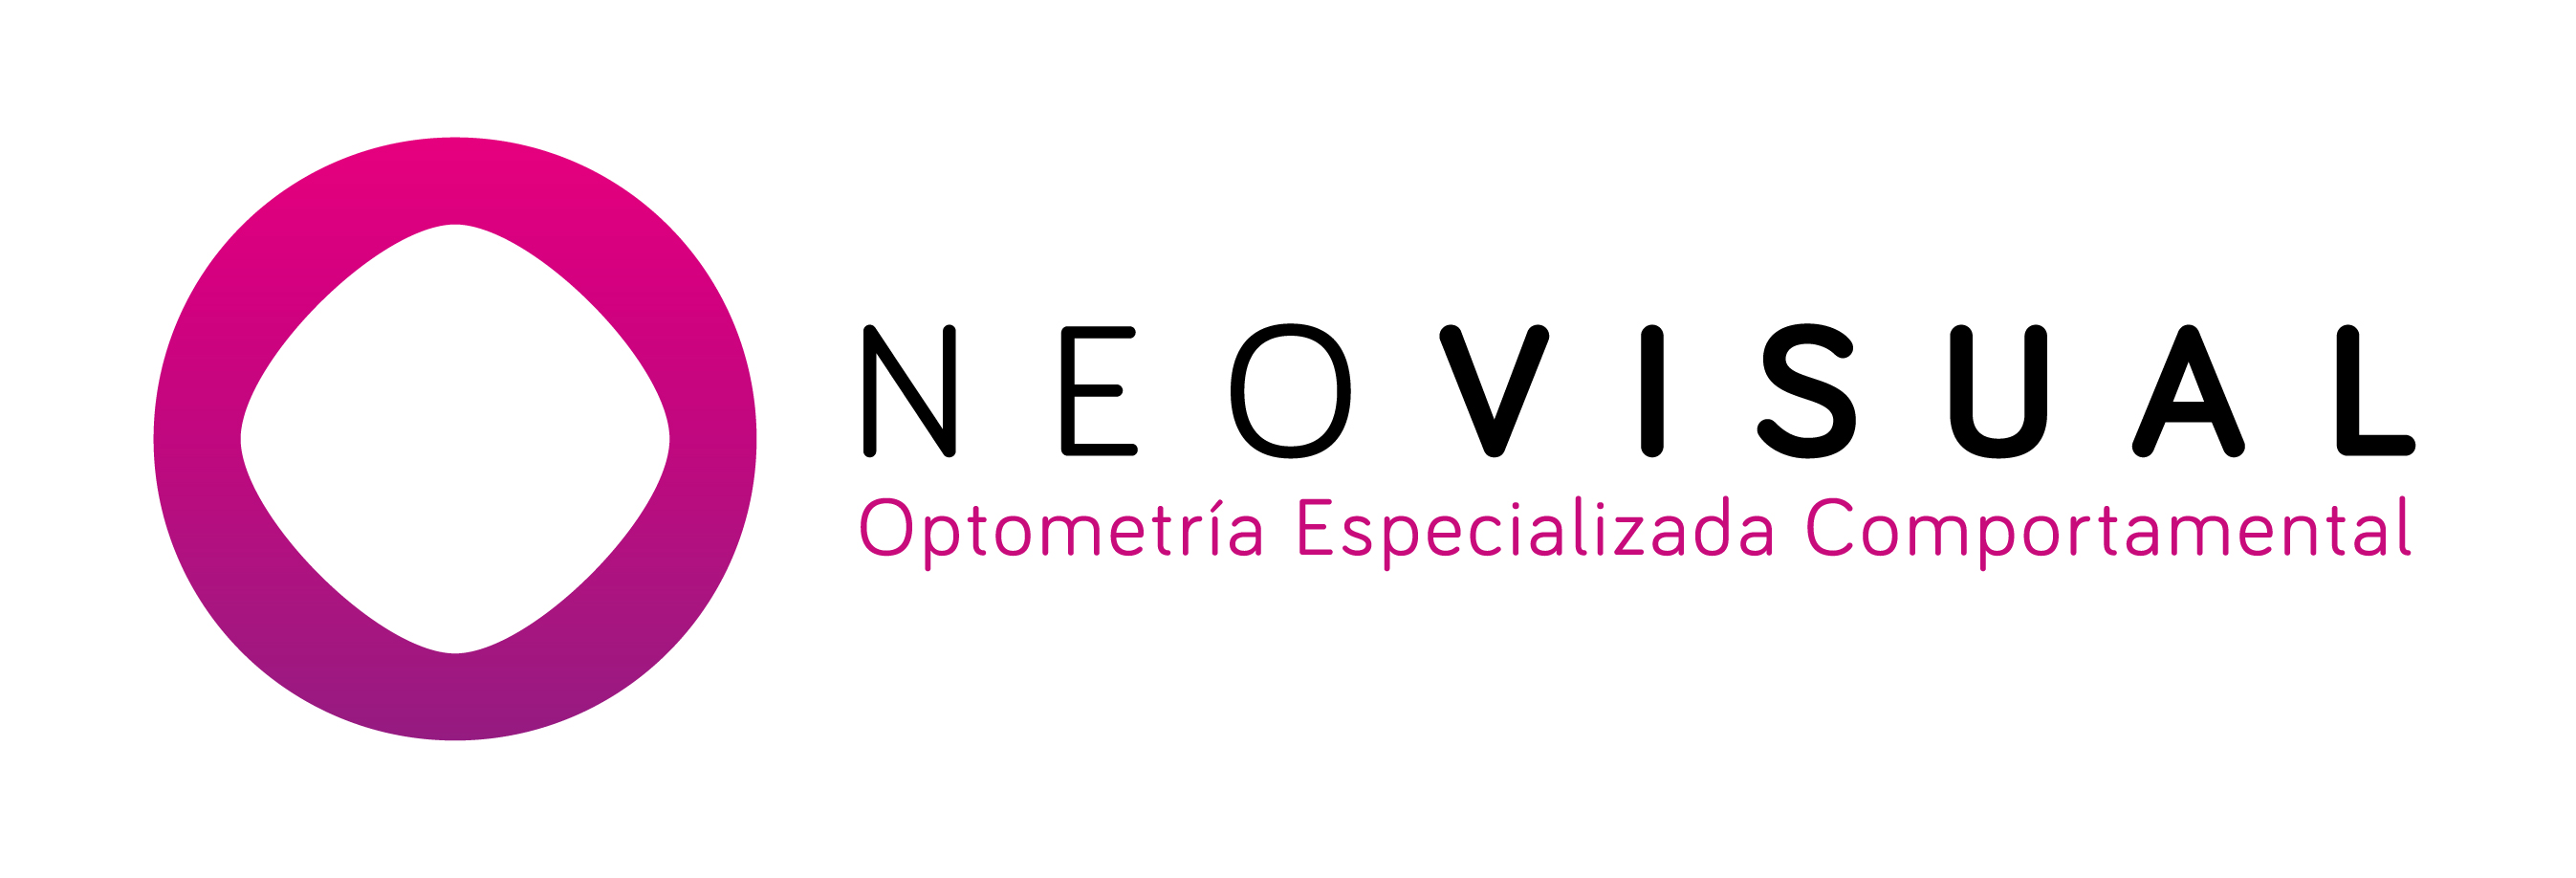 neovisual-logo-horizontal